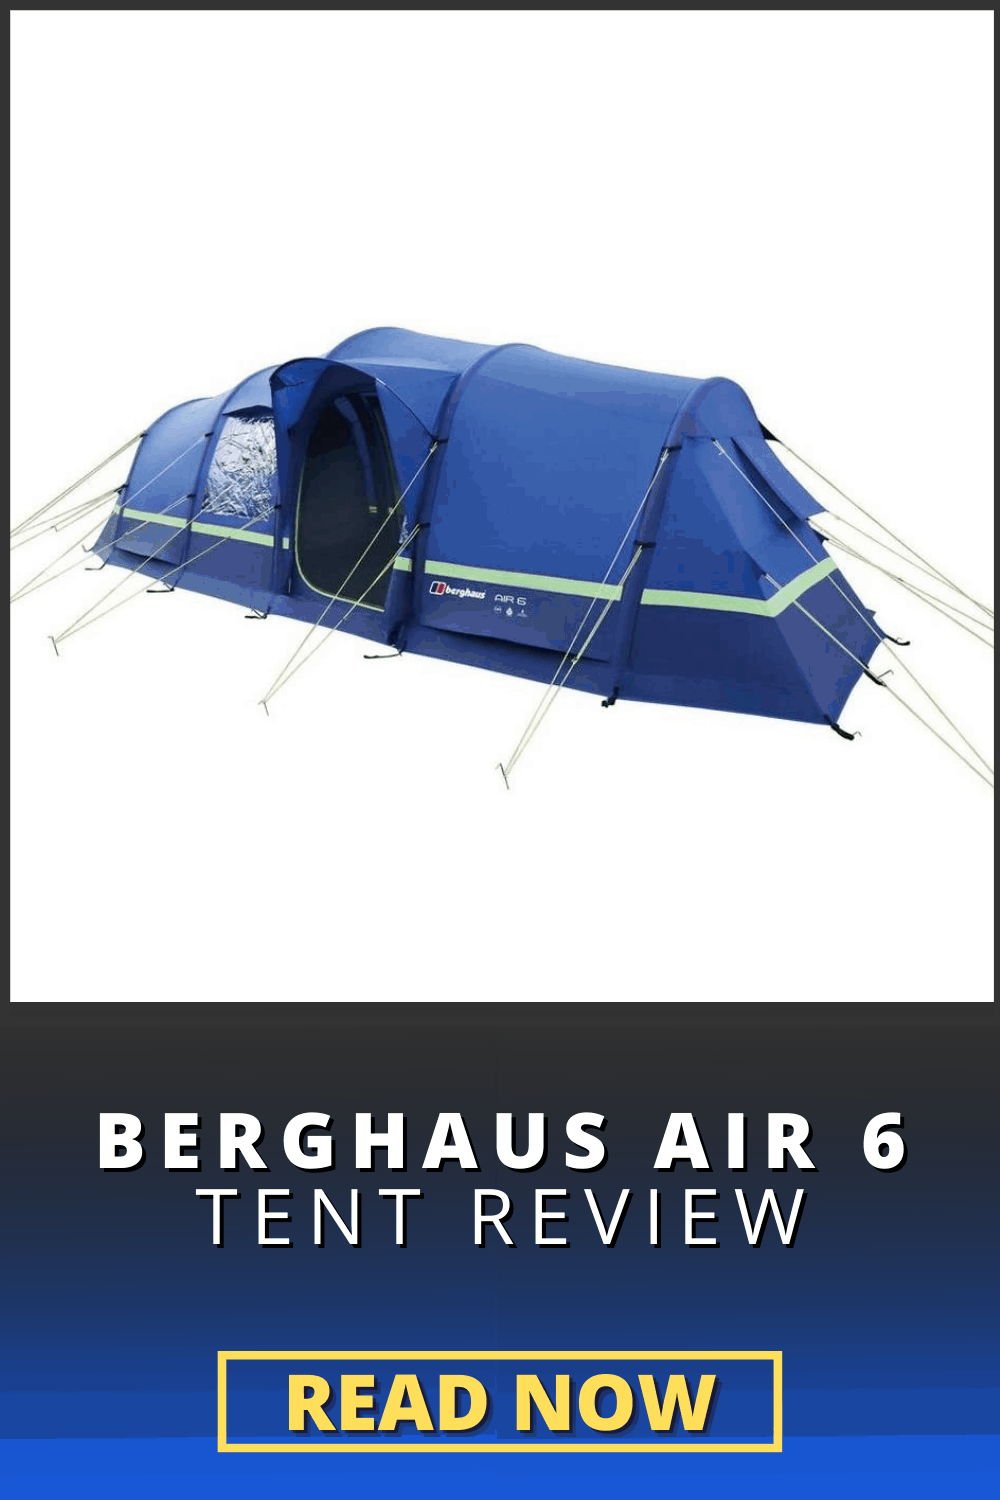 Berghaus Air 6